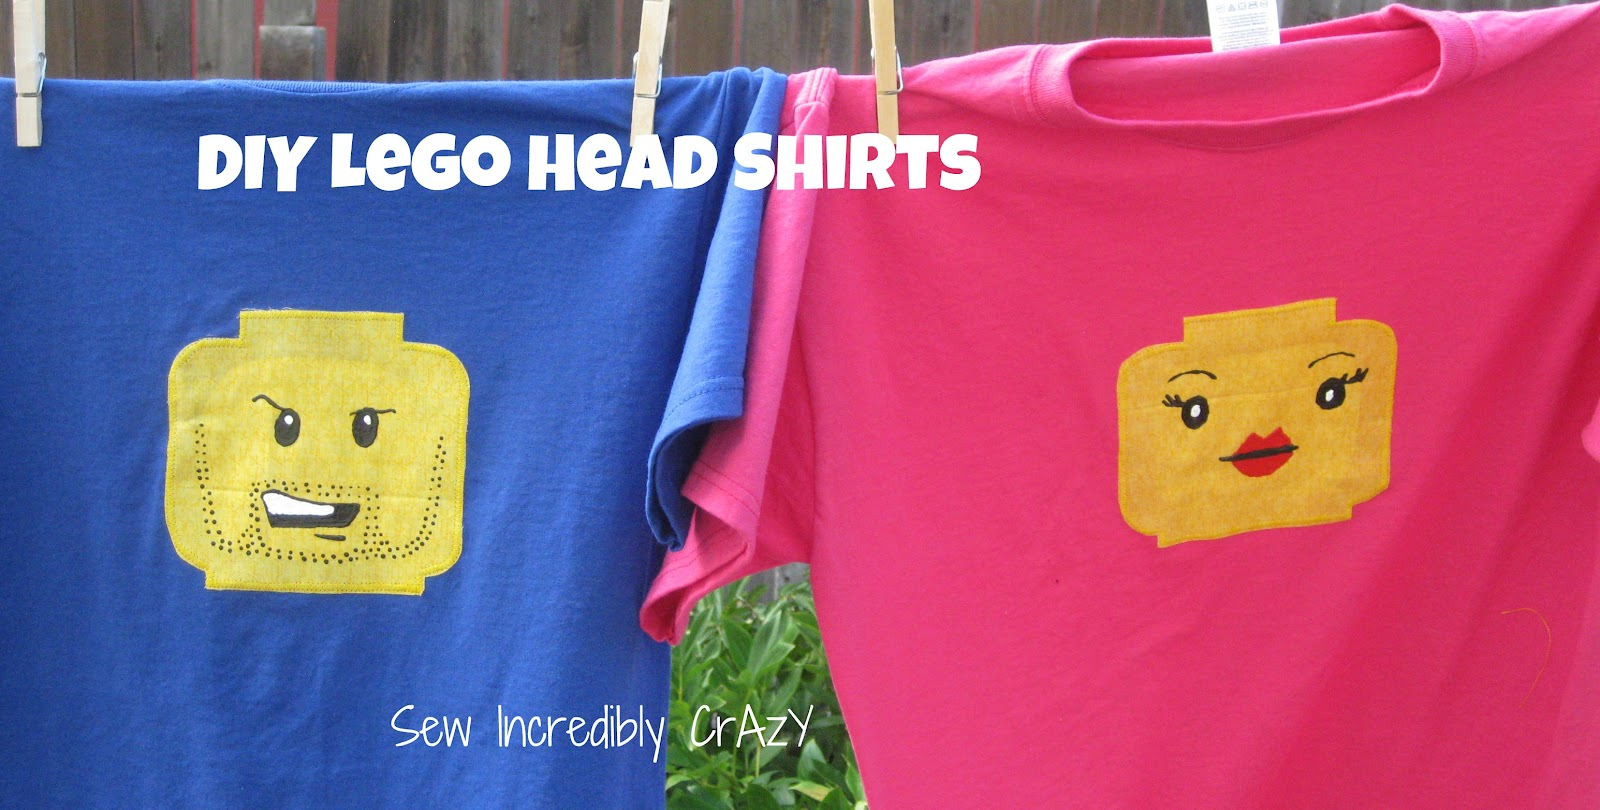 lego-head-shirts